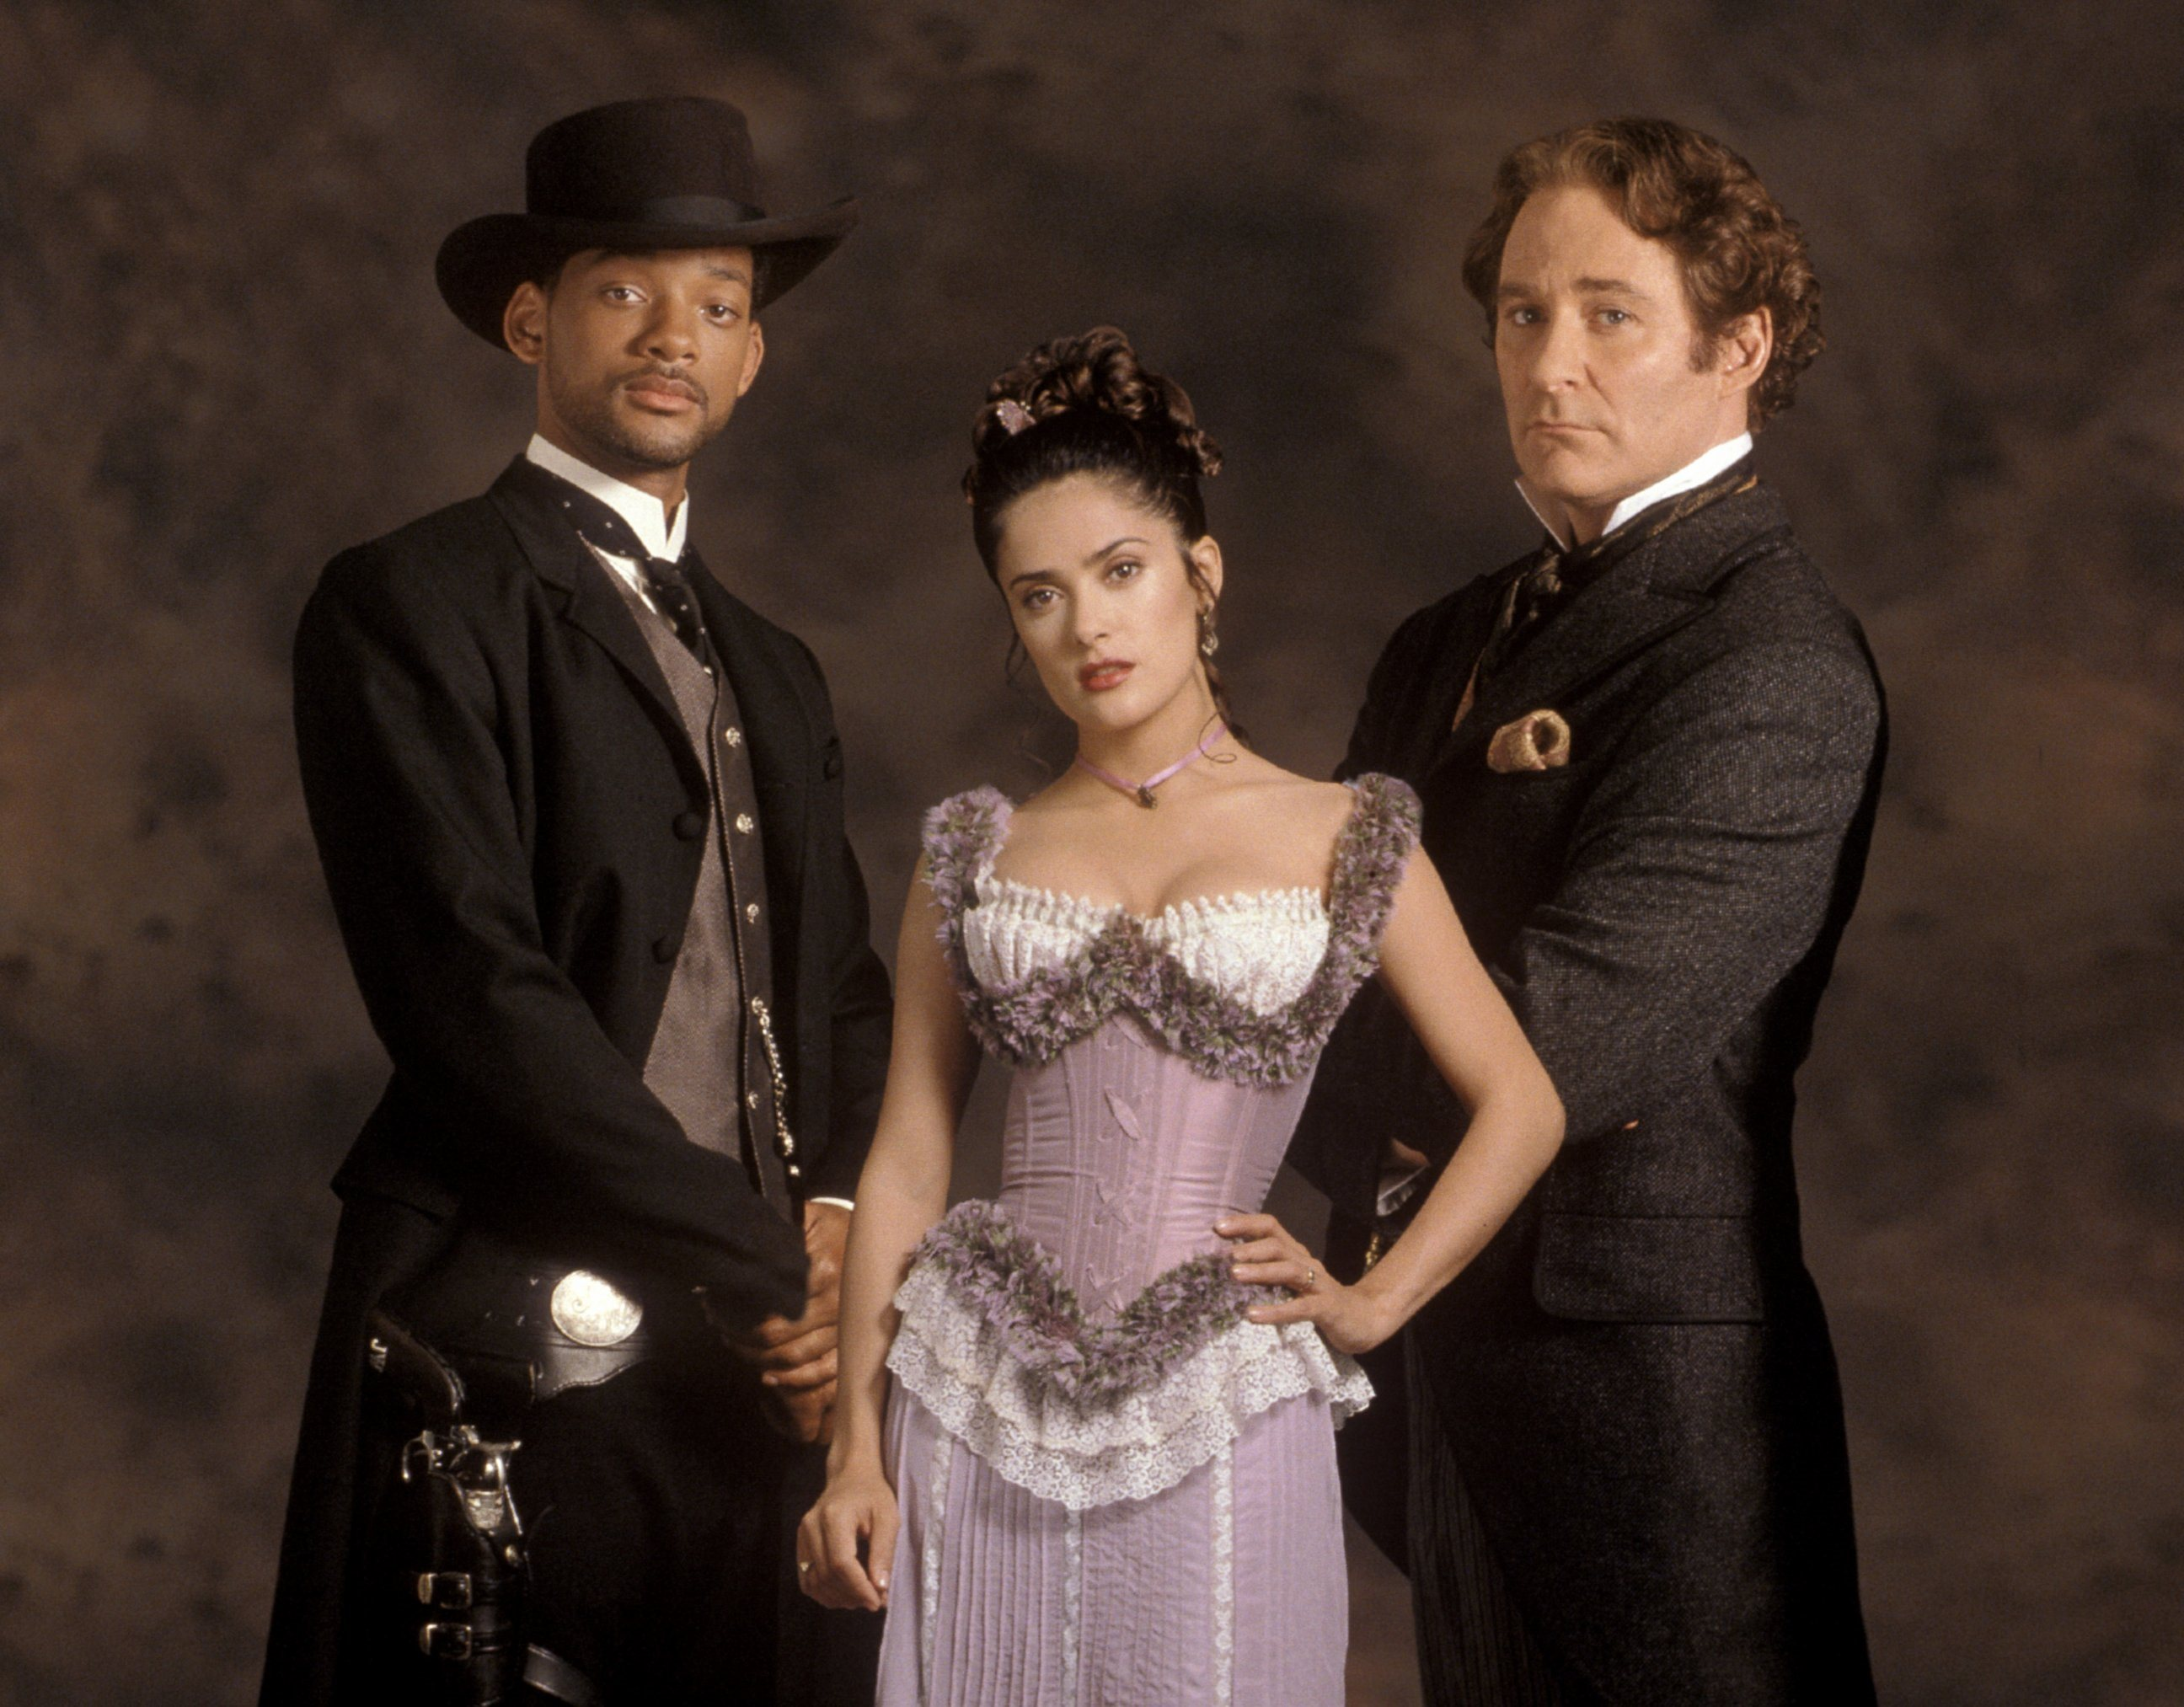 (l to r) Will Smith, Salma Hayek, Kevin Kline in Wild Wild West (1999)